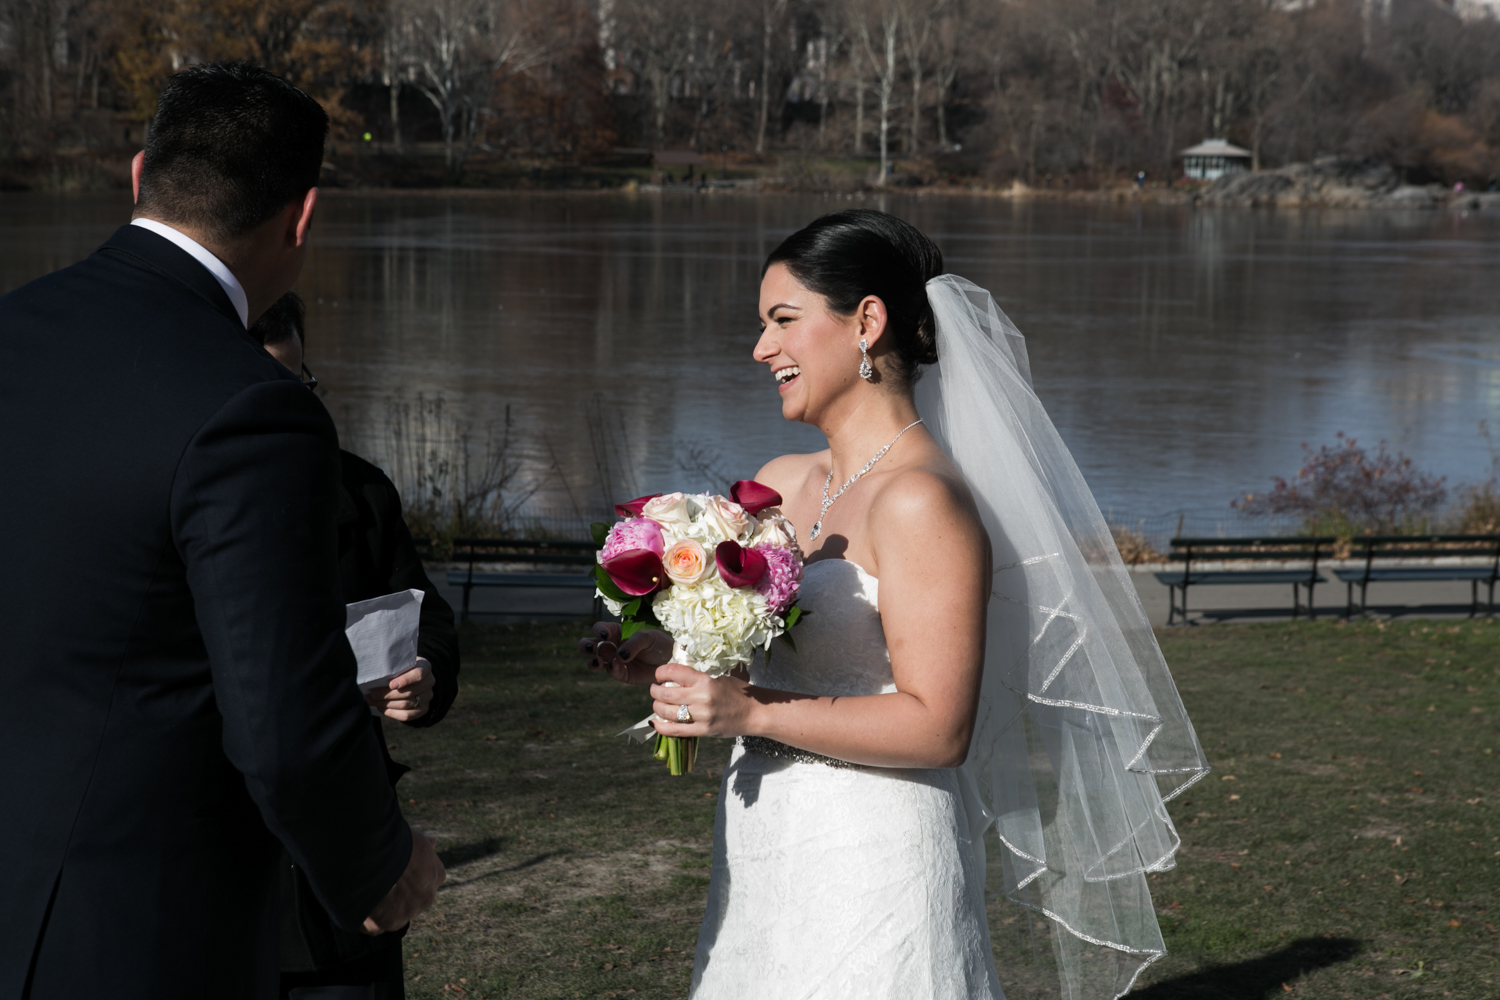 Bride smiling during the wedding ceremony